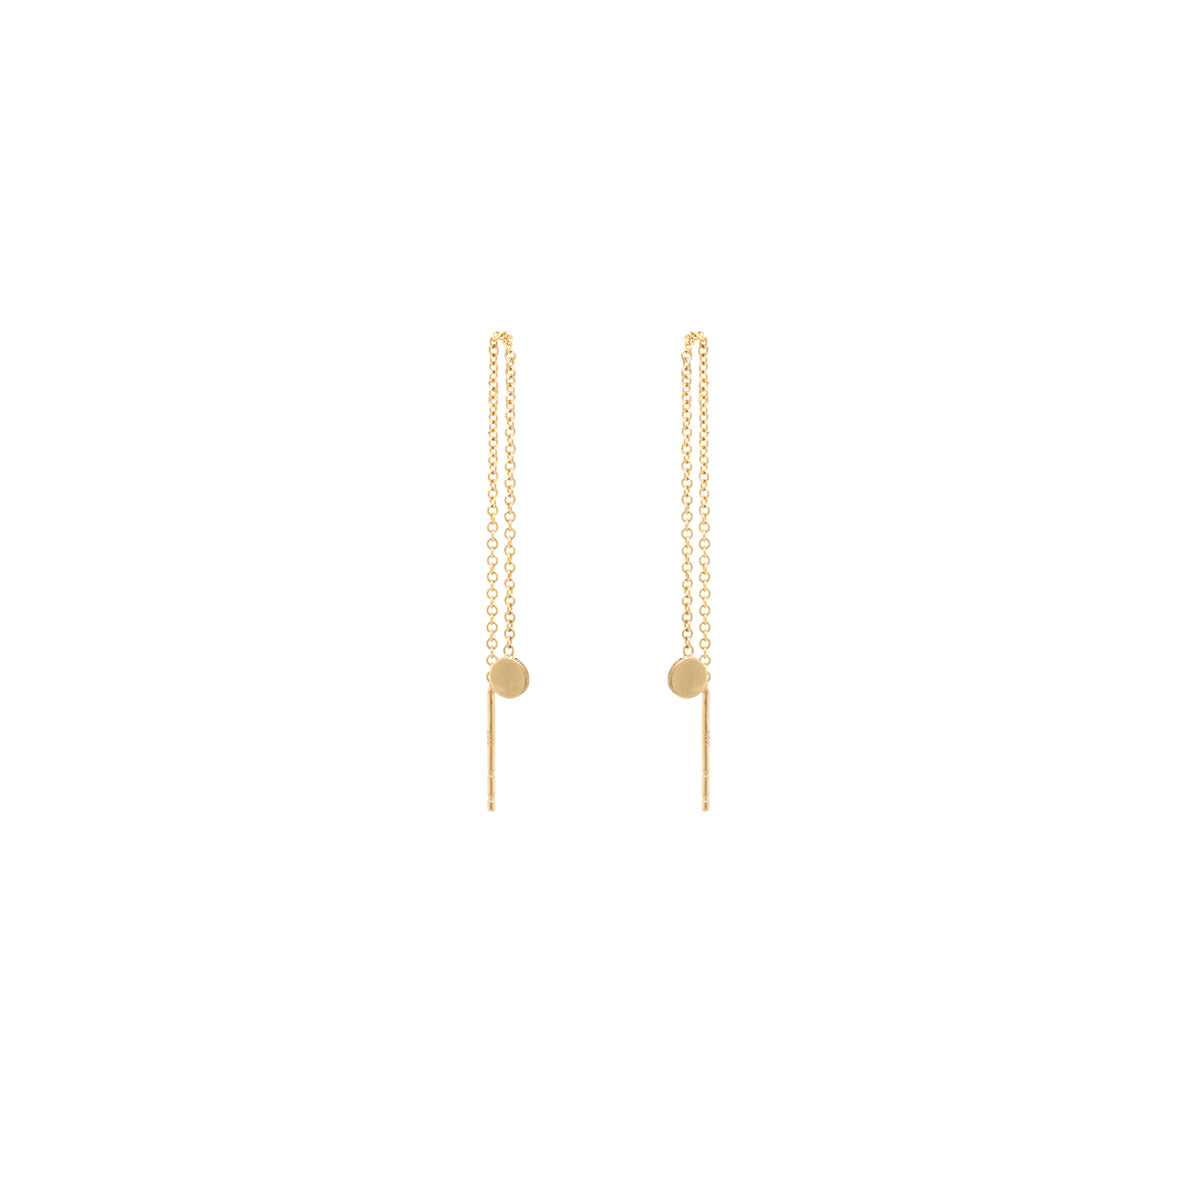 14k gold disc threader earrings